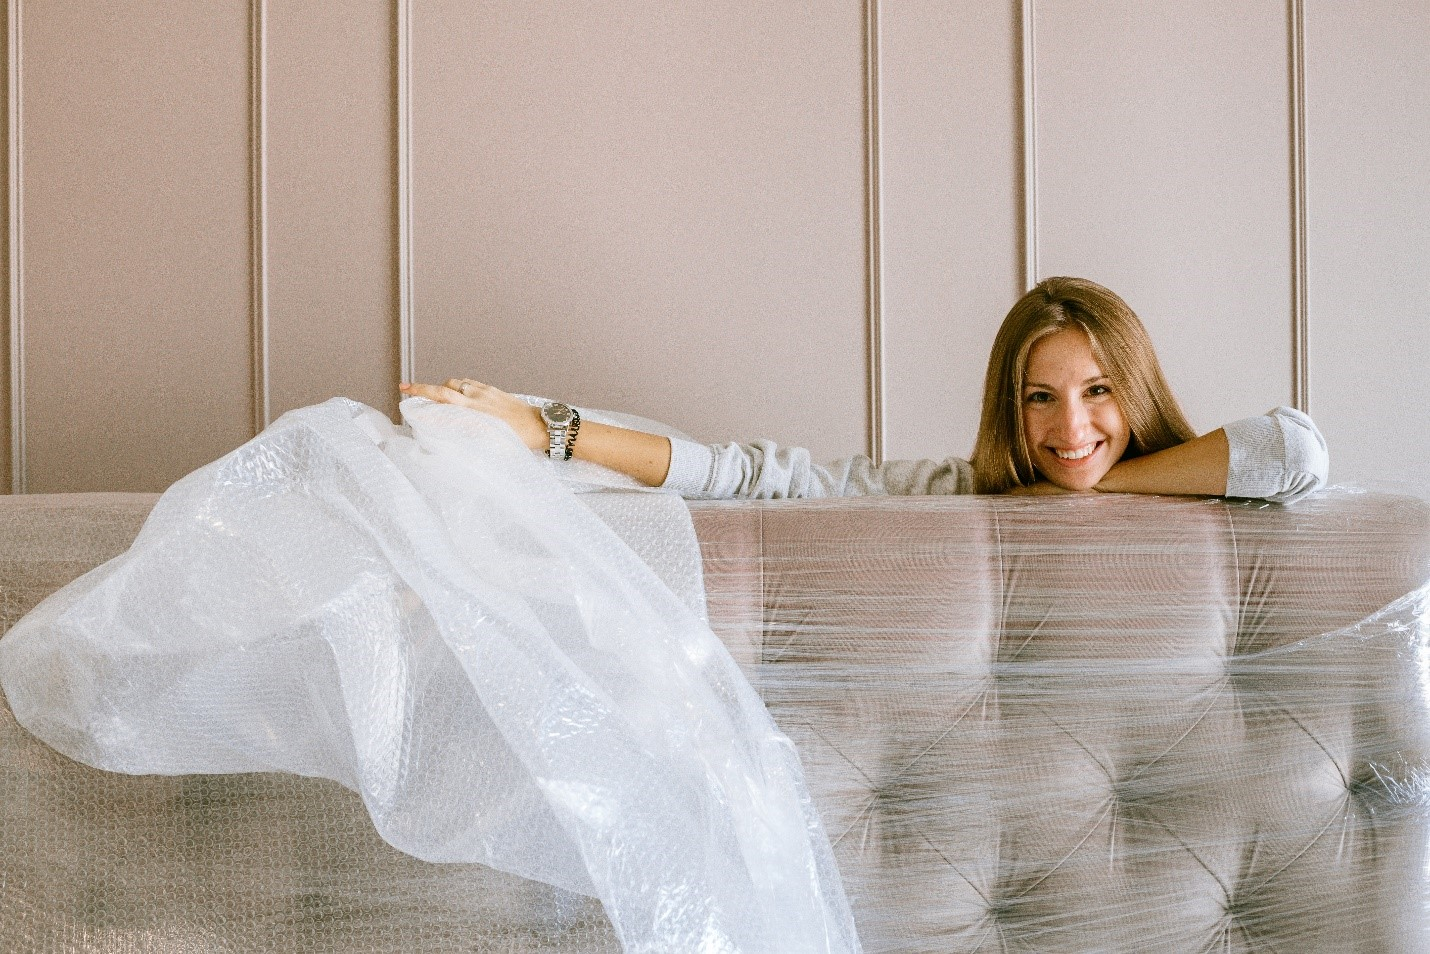 A woman covers a sofa in a plastic sheet to prevent damage in the long-distance moving